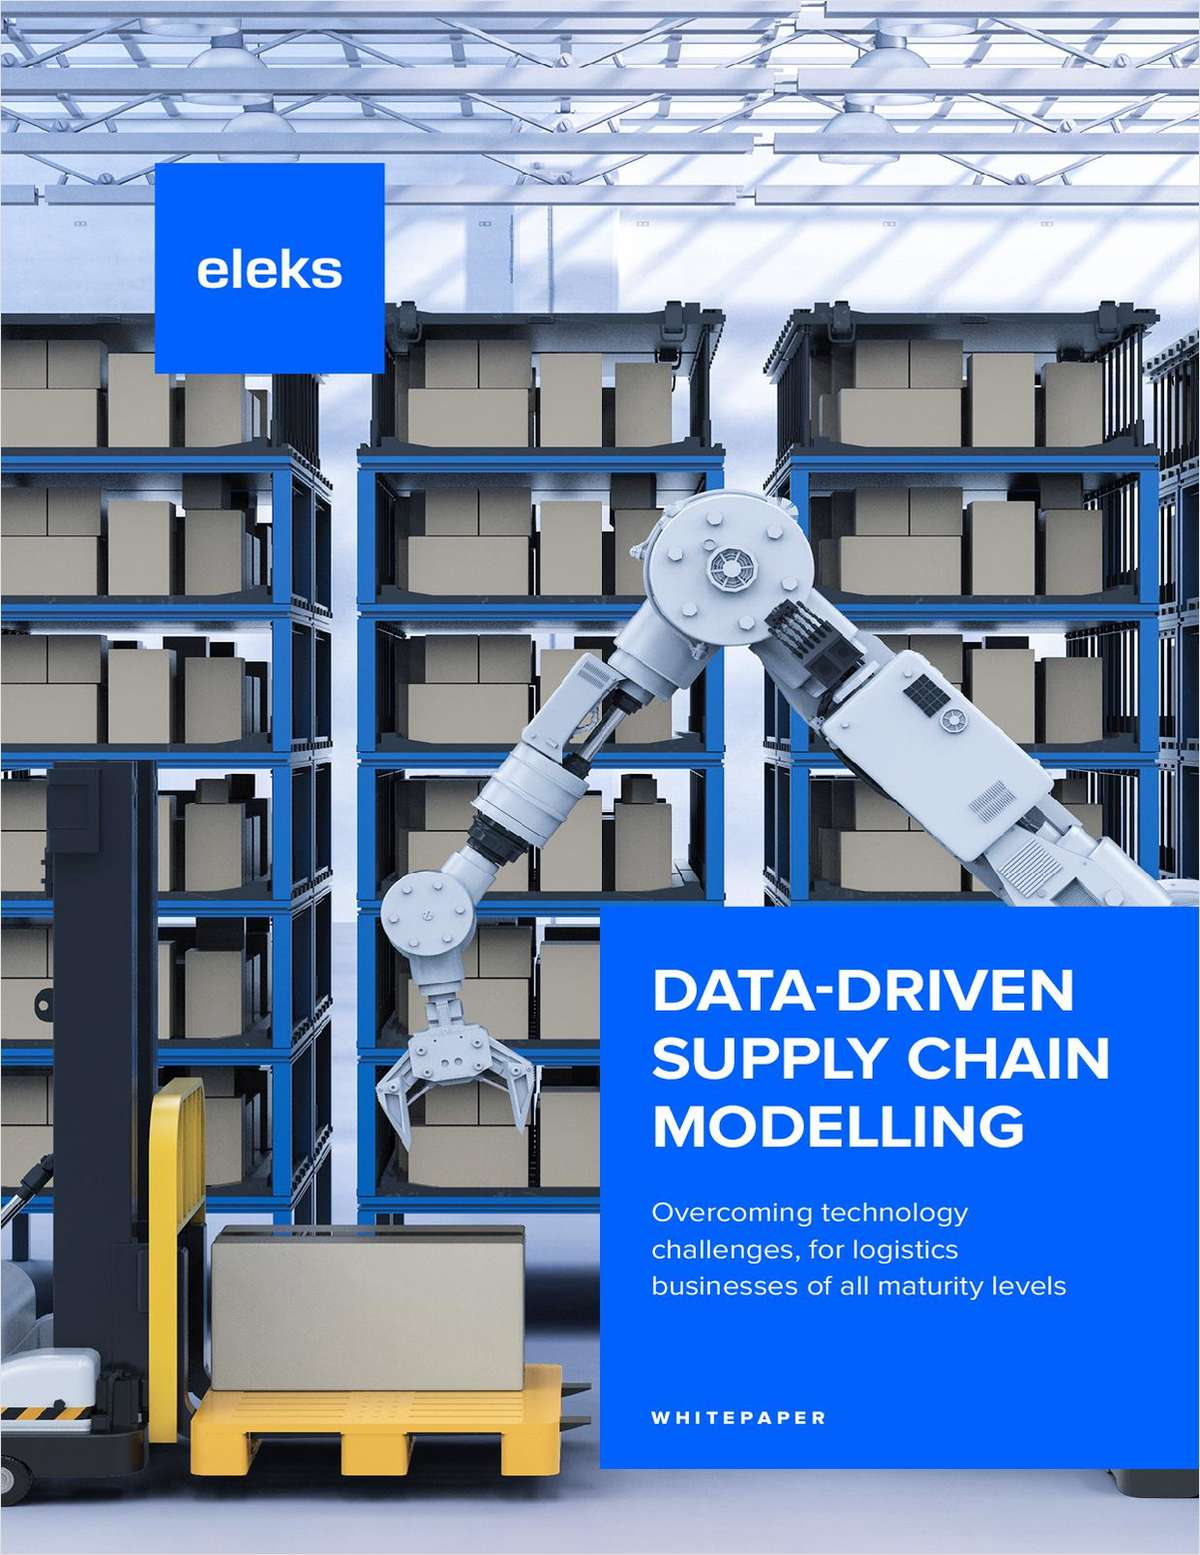 Data-driven Supply Chain Modelling